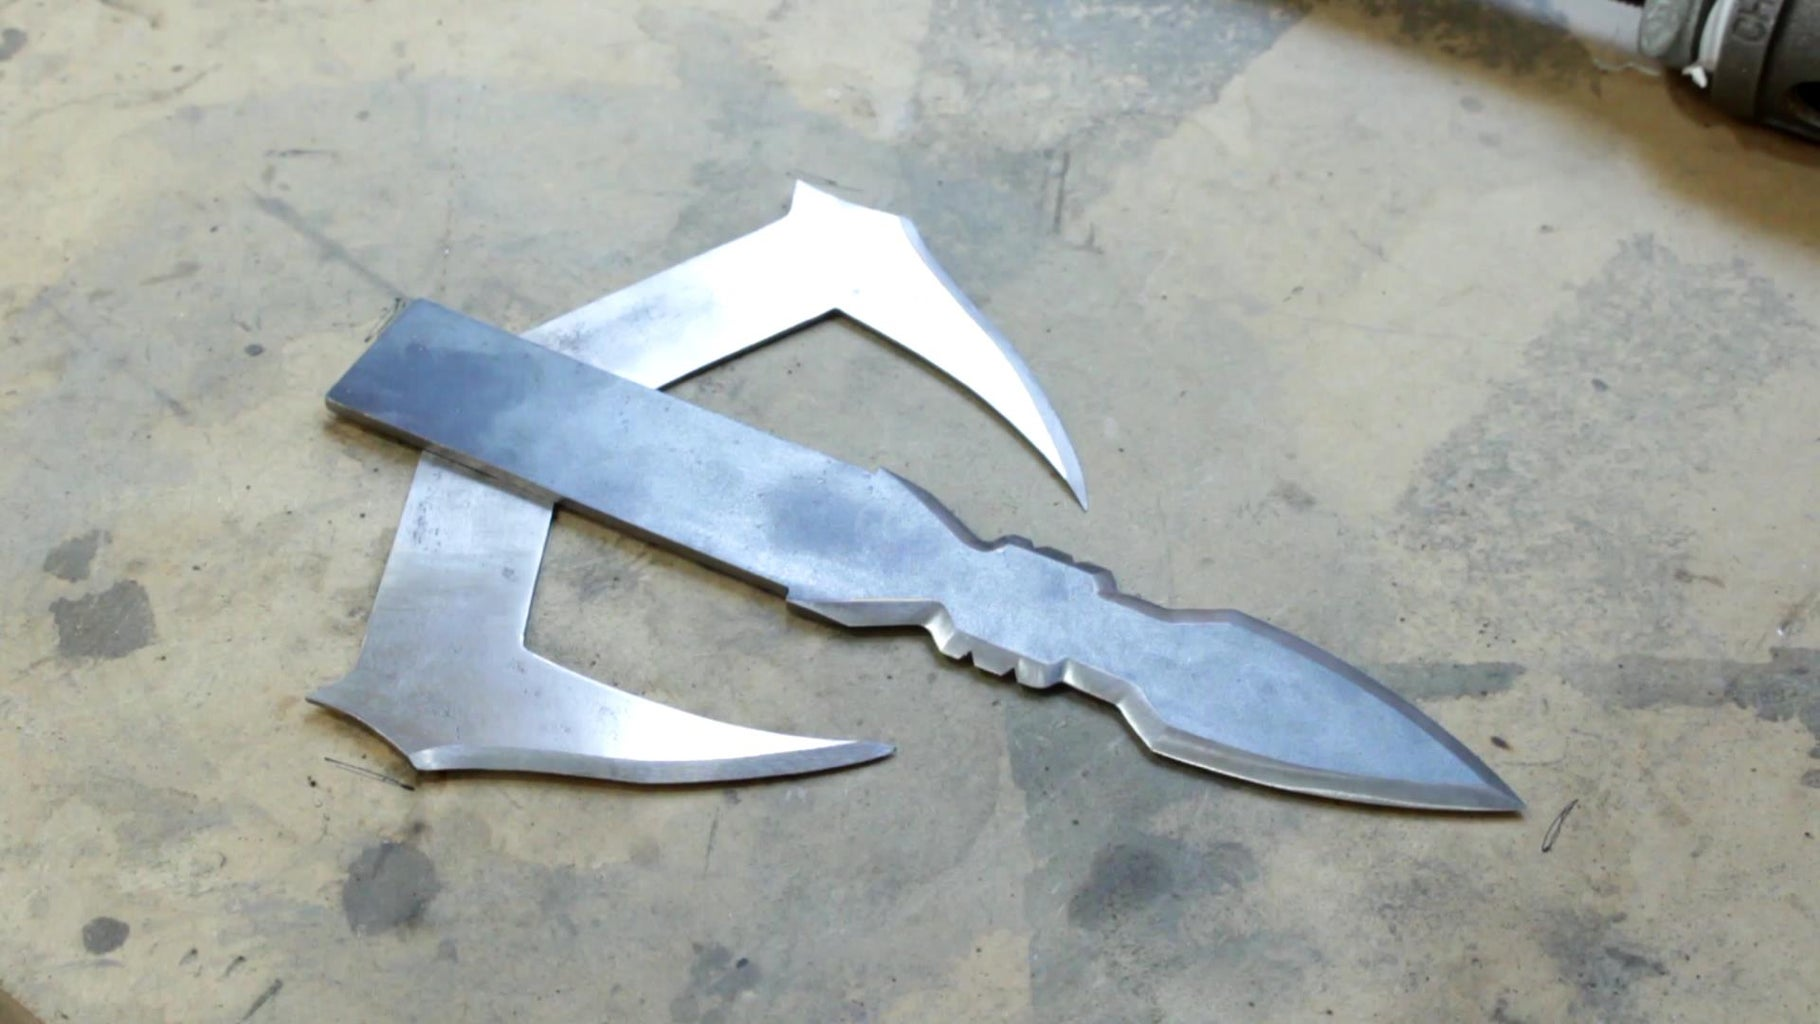 Finished Blades (just Cause the Picta Is So Dang Cool)